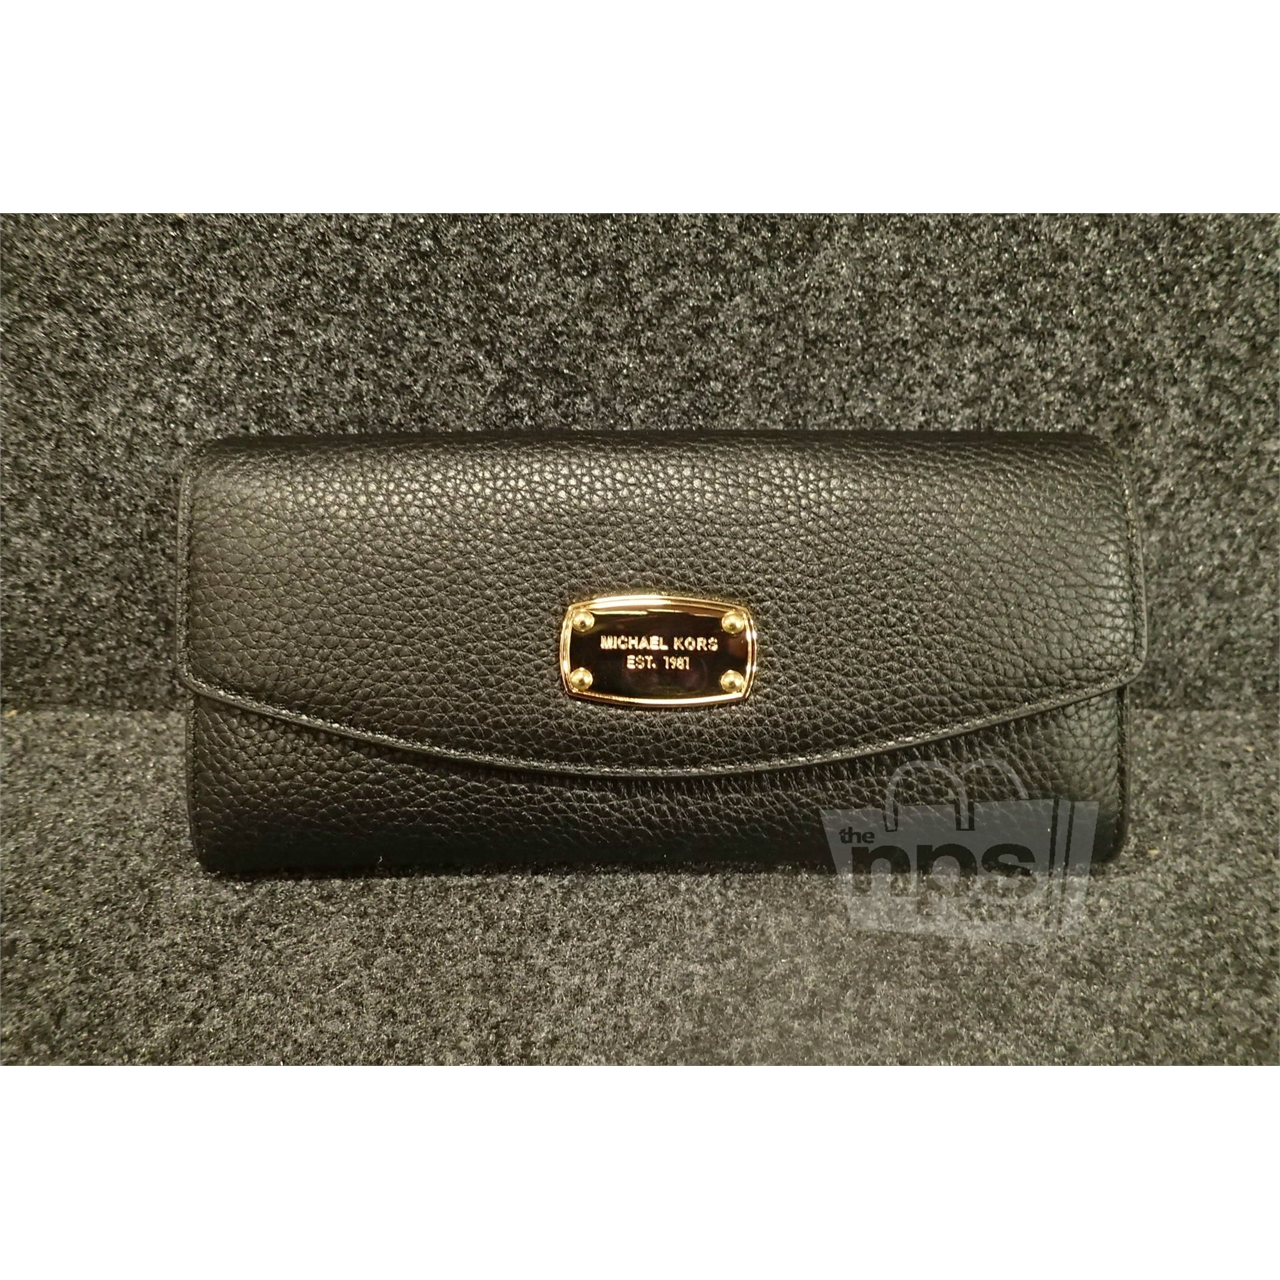 934942cf5b5f Black Pebbled Leather Wallet Michael Kors | Stanford Center for ...